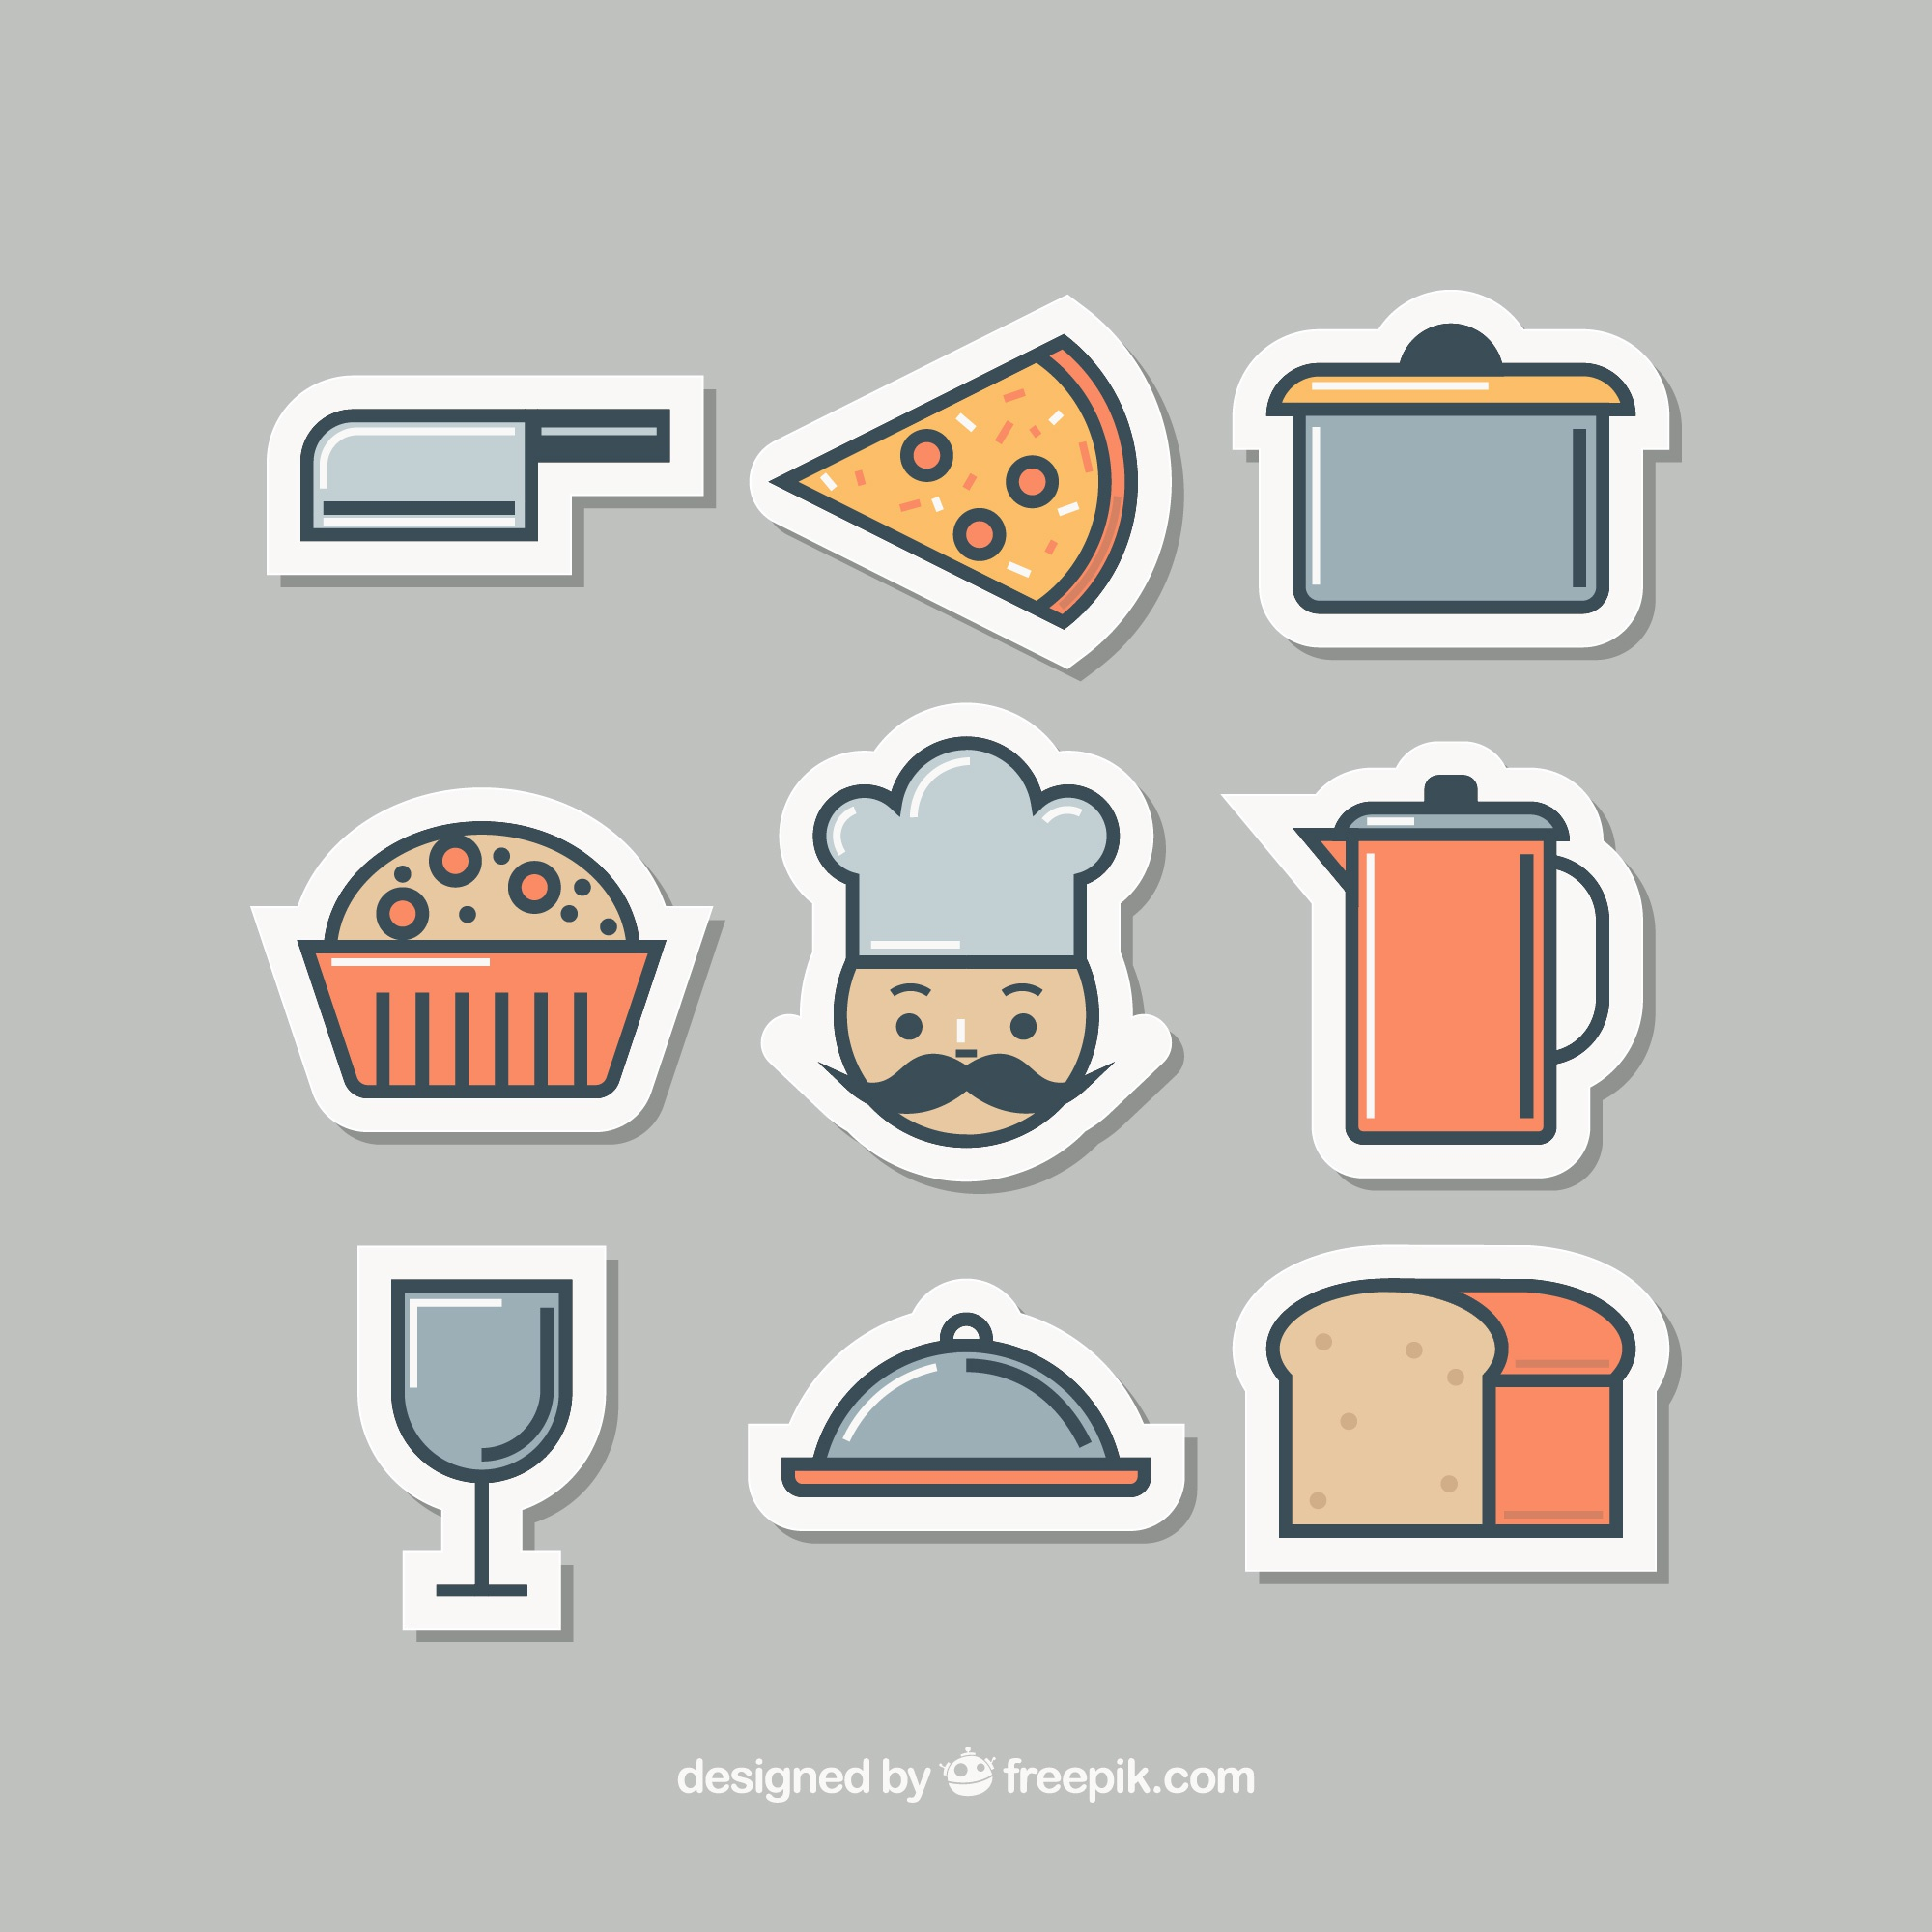 Nice stickers for kitchen objects and chef